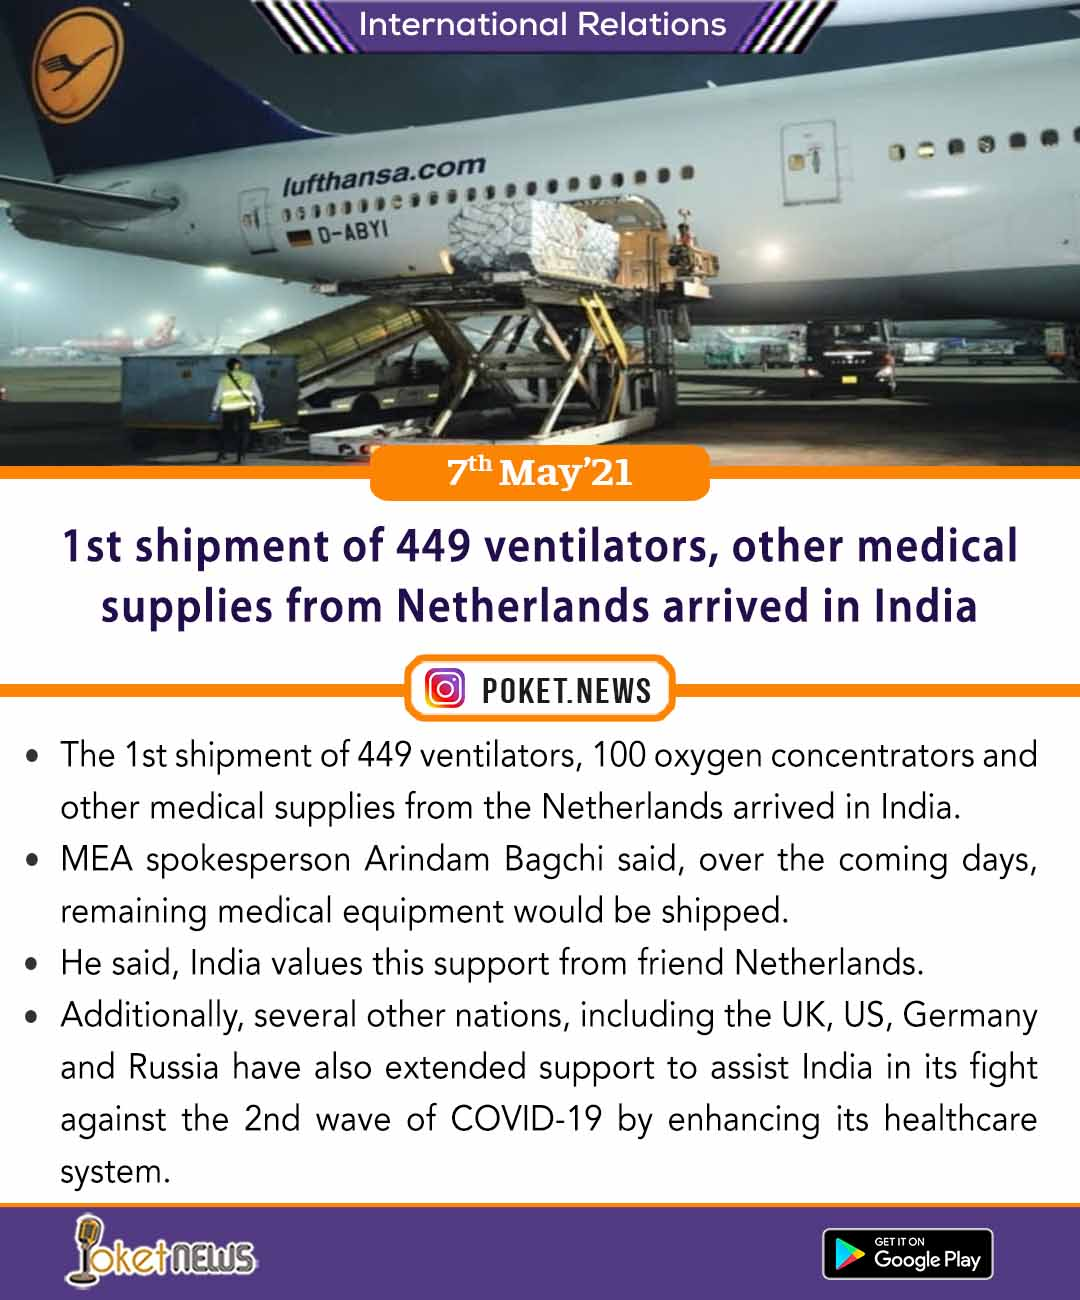 First shipment of 449 ventilators, other medical supplies from Netherlands arrived in India